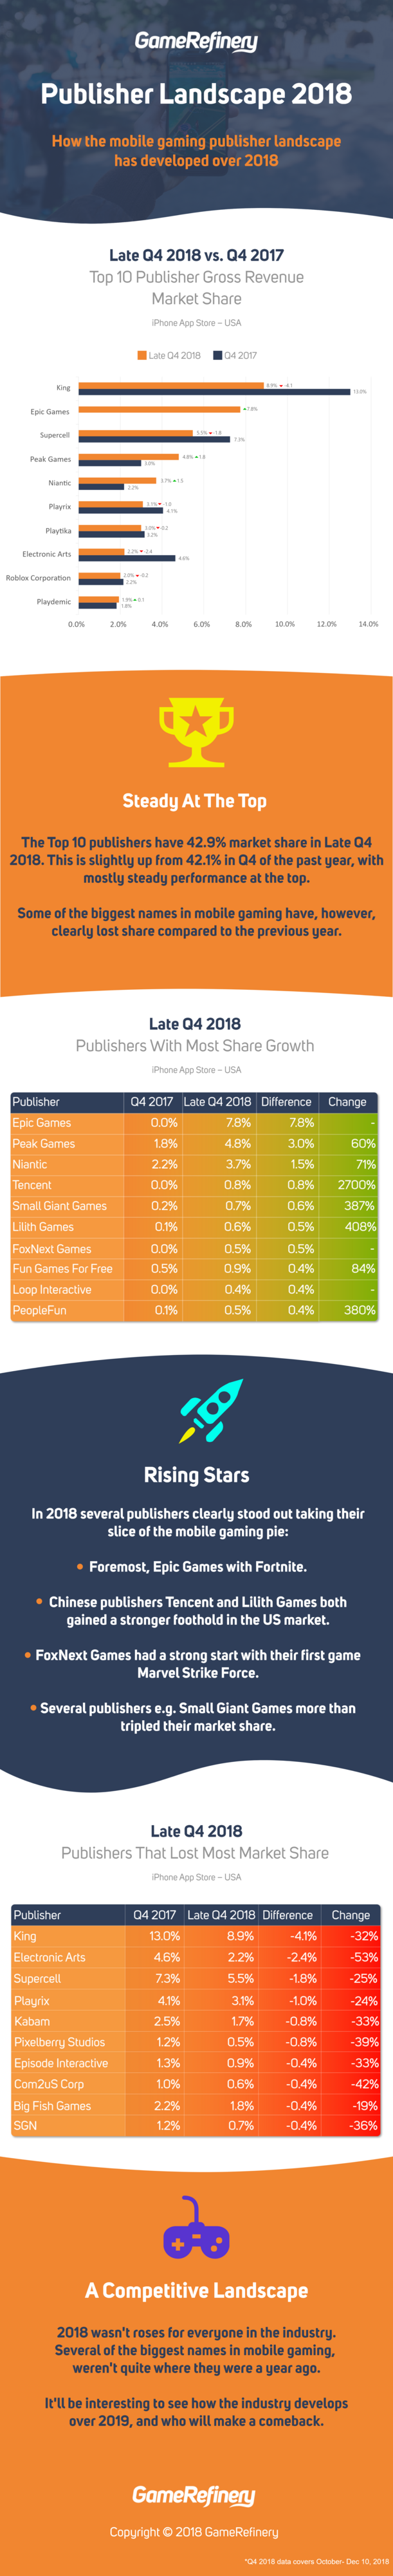 How has mobile game publisher market share developed over 2018? The Top 10 publishers have 42.9% market share in Late Q4 2018. This is slightly up from 42.1% in Q4 of the past year, with mostly steady performance at the top. Some of the biggest names in mobile gaming have, however, clearly lost share compared to the previous year. In 2018 several publishers clearly stood out taking their slice of the mobile gaming pie: Foremost, Epic Games with Fortnite. Chinese publishers Tencent and Lilith Games both gained a stronger foothold in the US market. FoxNext Games had a strong start with their first game Marvel Strike Force. Several publishers e.g. Small Giant Games more than tripled their market share. 2018 wasn't roses for everyone in the industry. Several of the biggest names in mobile gaming, weren't quite where they were a year ago. It'll be interesting to see how the industry develops over 2019, and who will make a comeback.